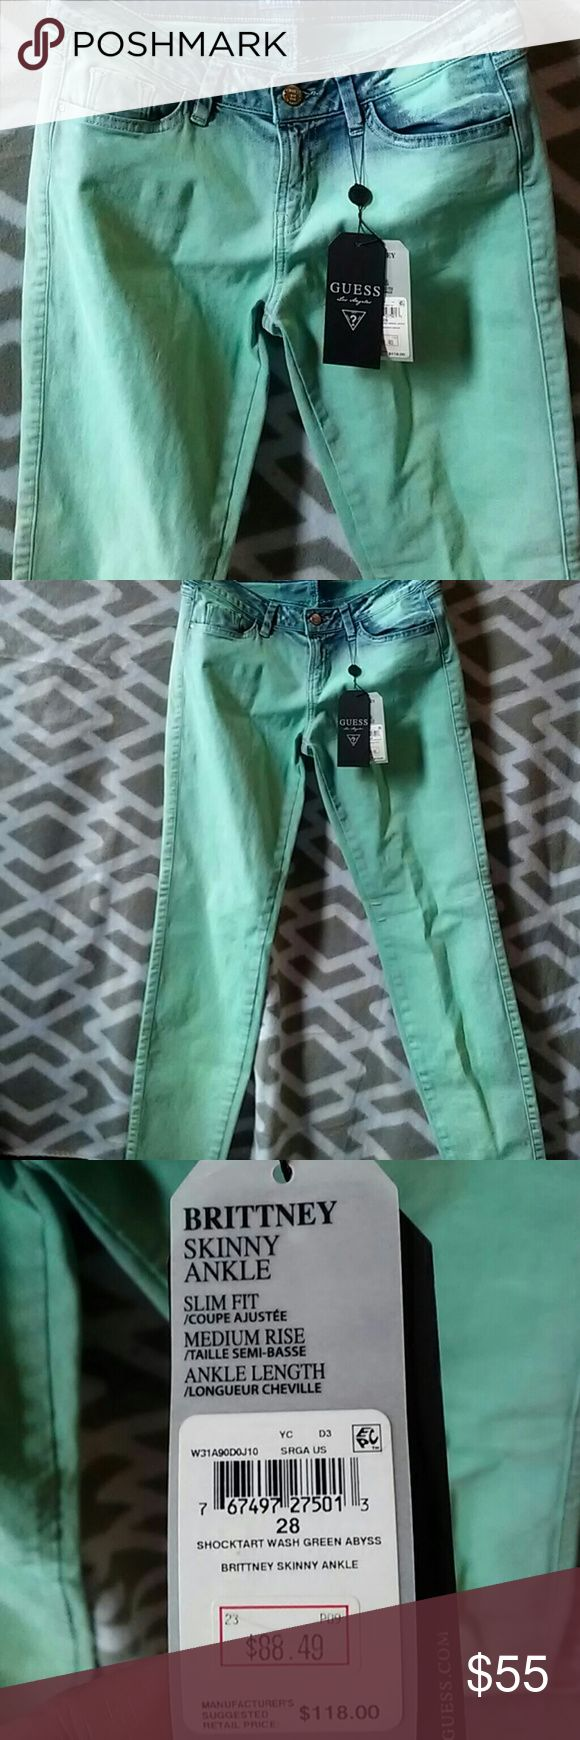 FLASH SALE! NWT Guess Skinny Jeans Originally $118 NWT Guess Teal Skinny Jeans, beautiful teal ombre colors. High quality, beautiful pair of unique skinny jeans! Guess Pants